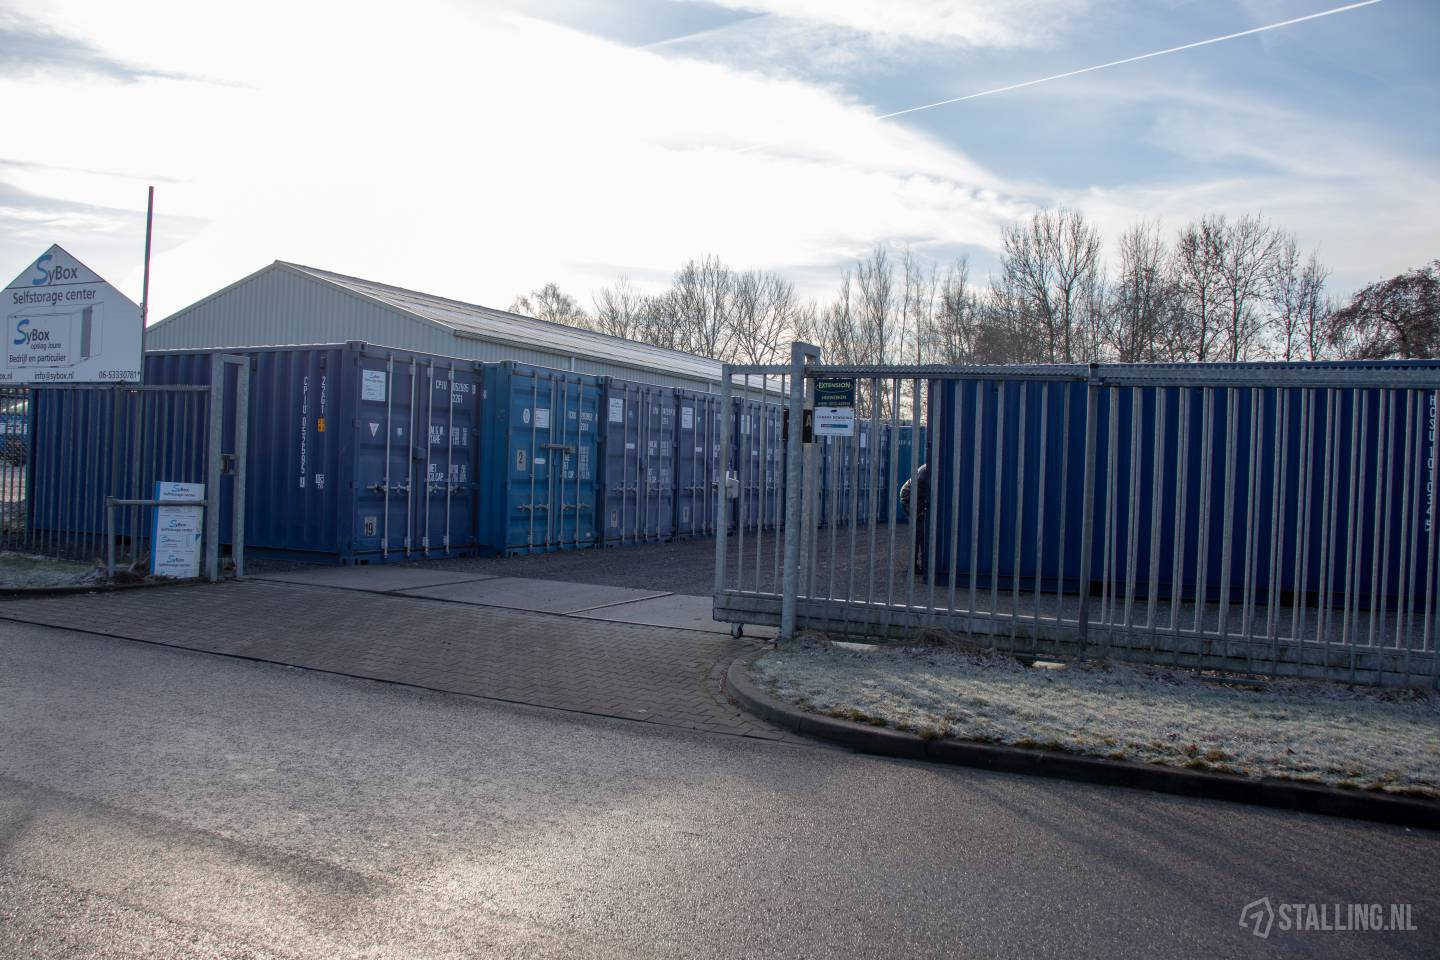 sybox self storage containeropslag joure friesland